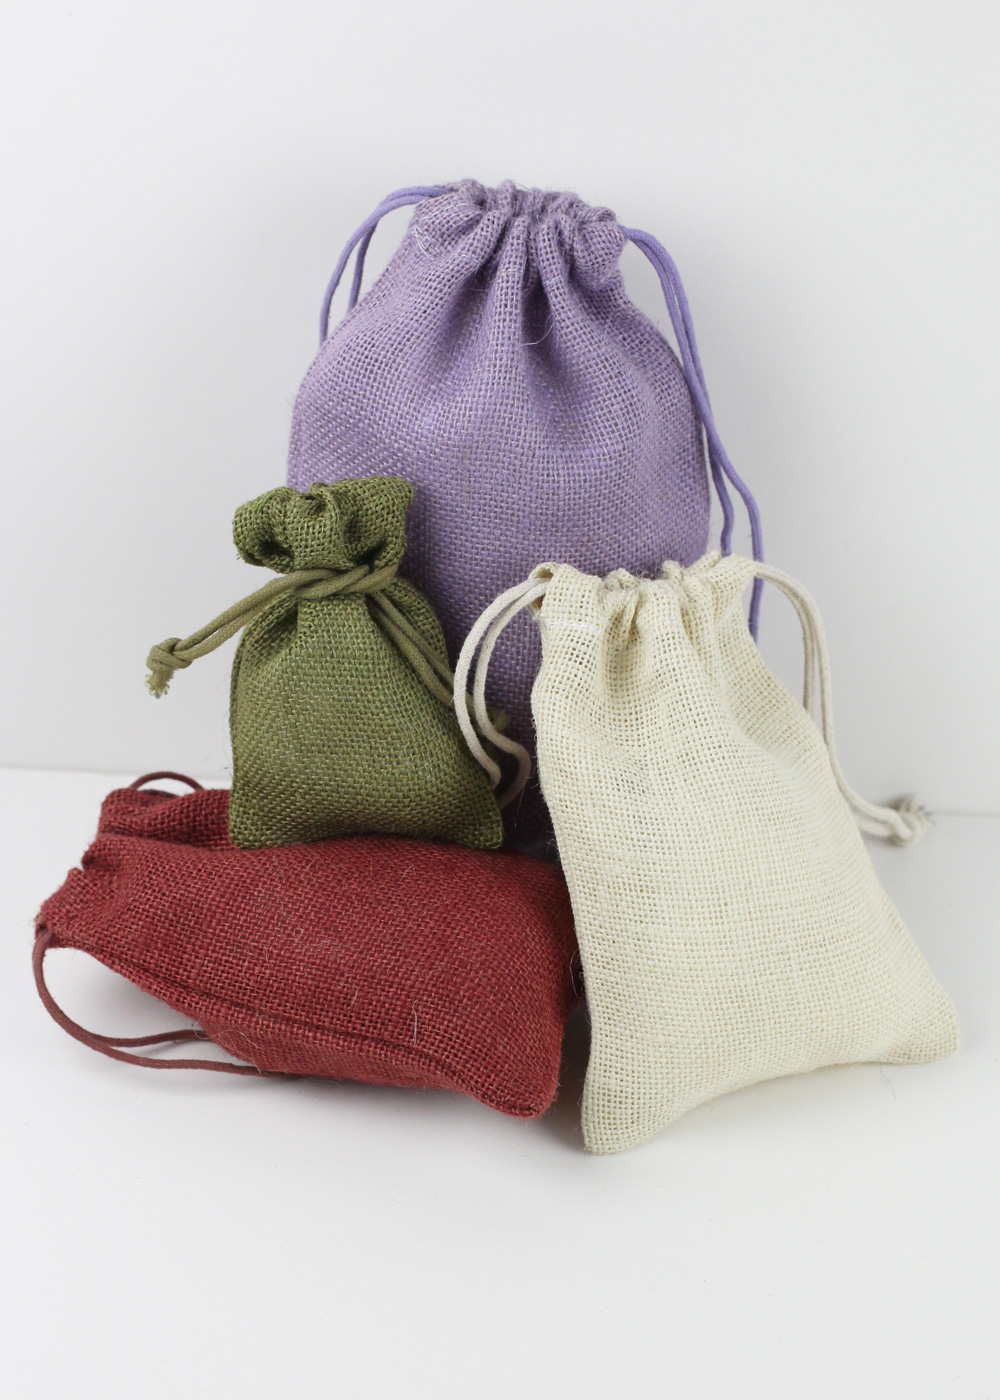 Colored Burlap Bags w/ Jute Cord